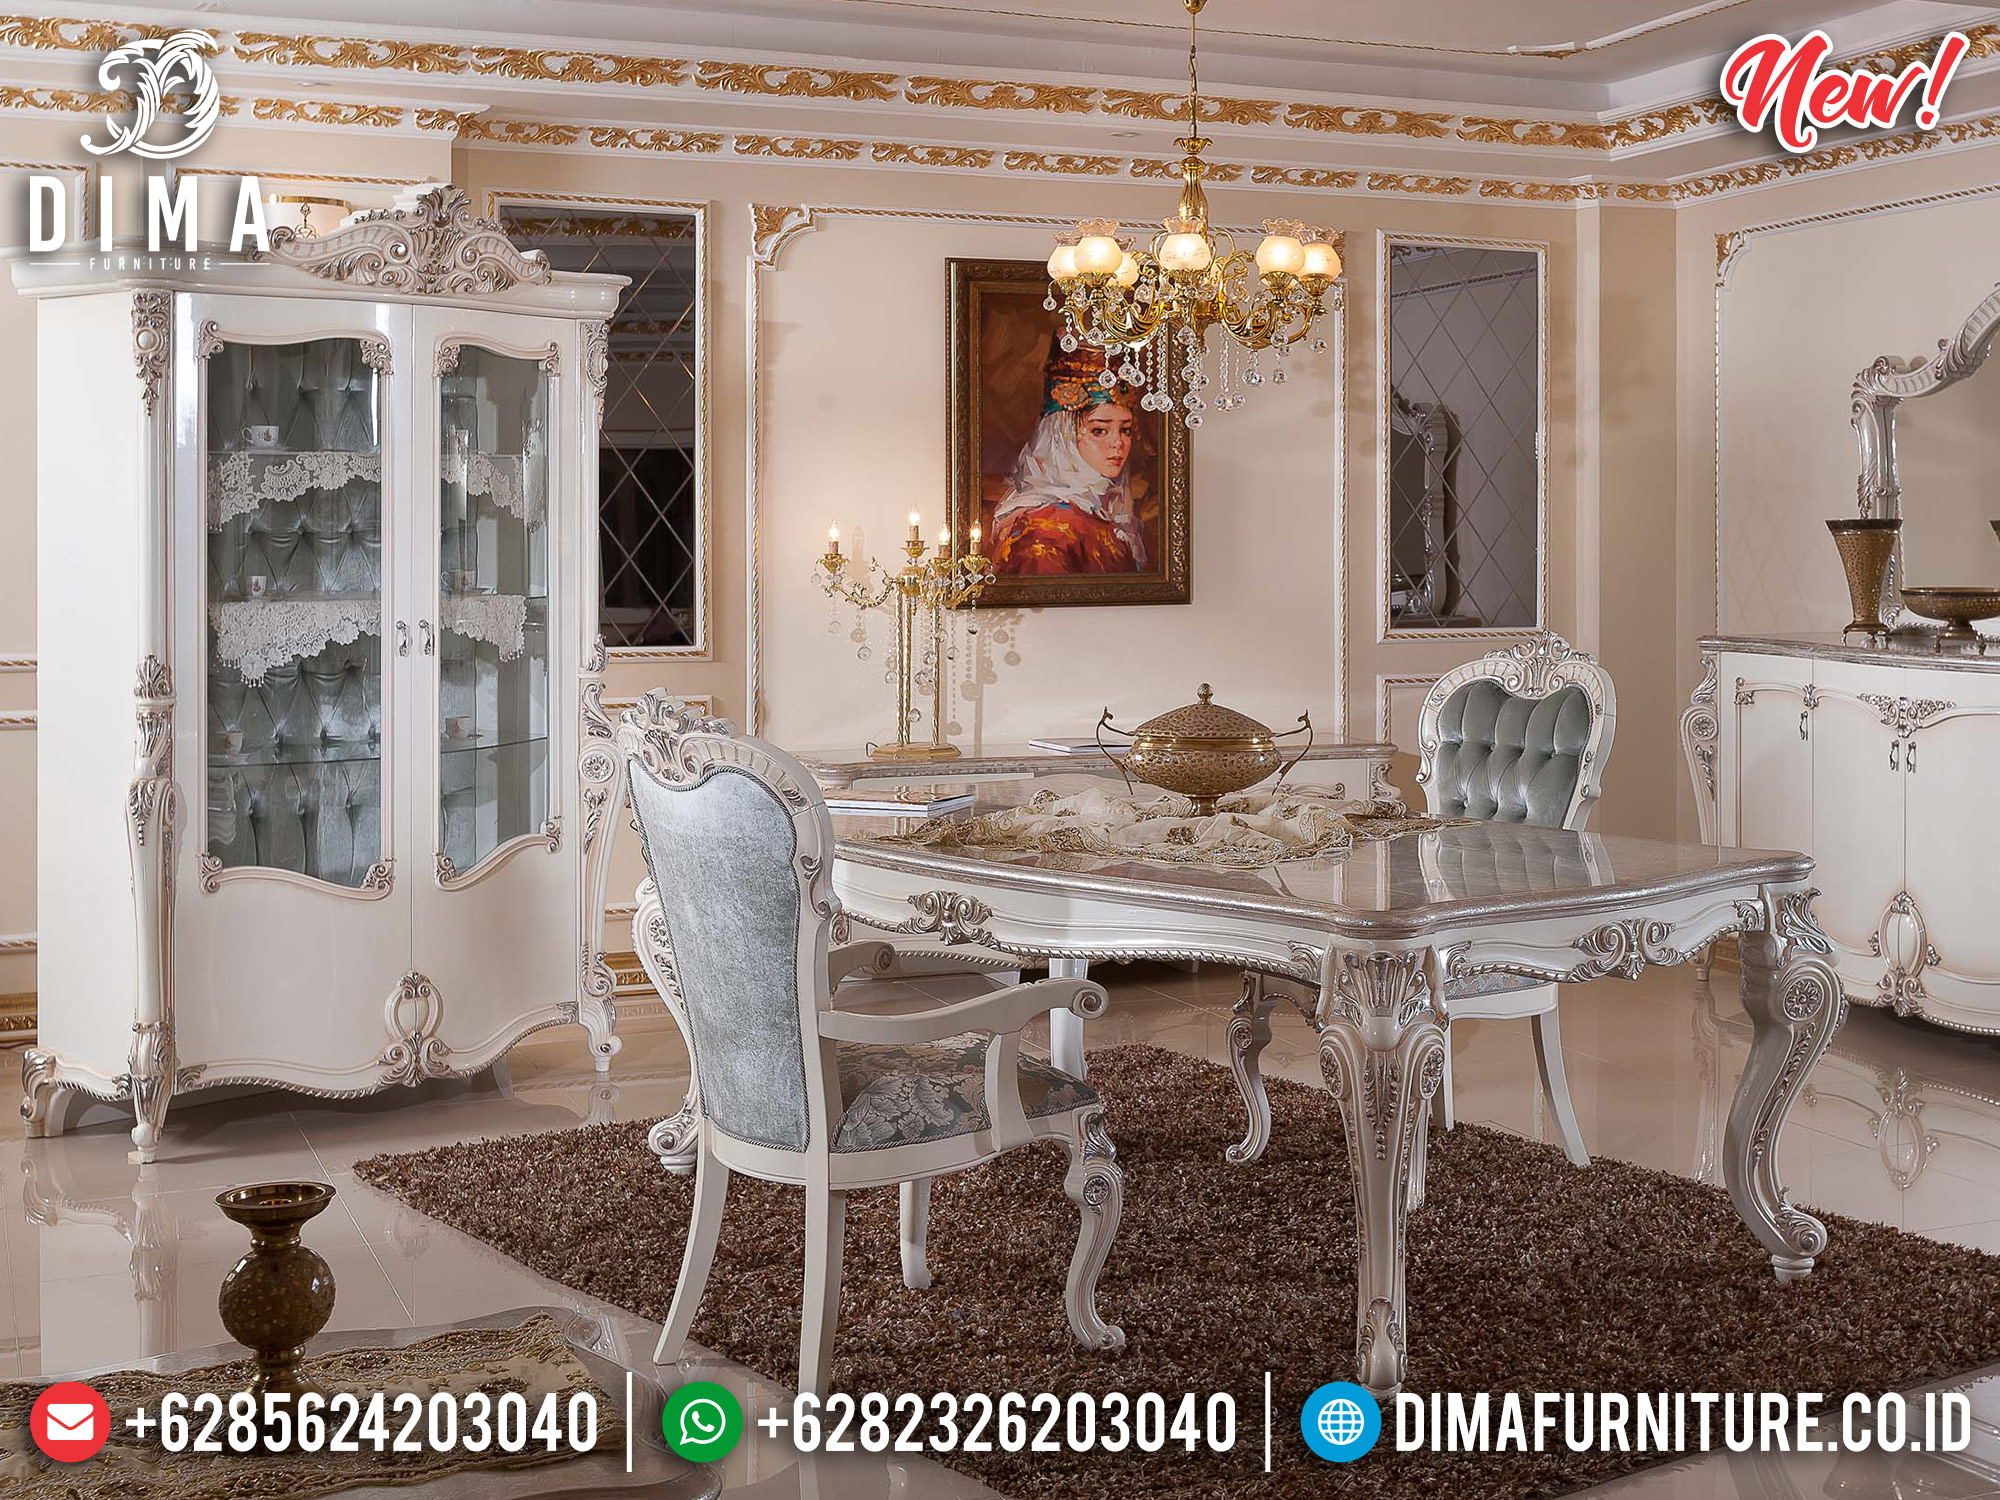 New Meja Makan Ukiran Mewah Luxury Classic Royals Design Furniture Jepara TTJ-1189